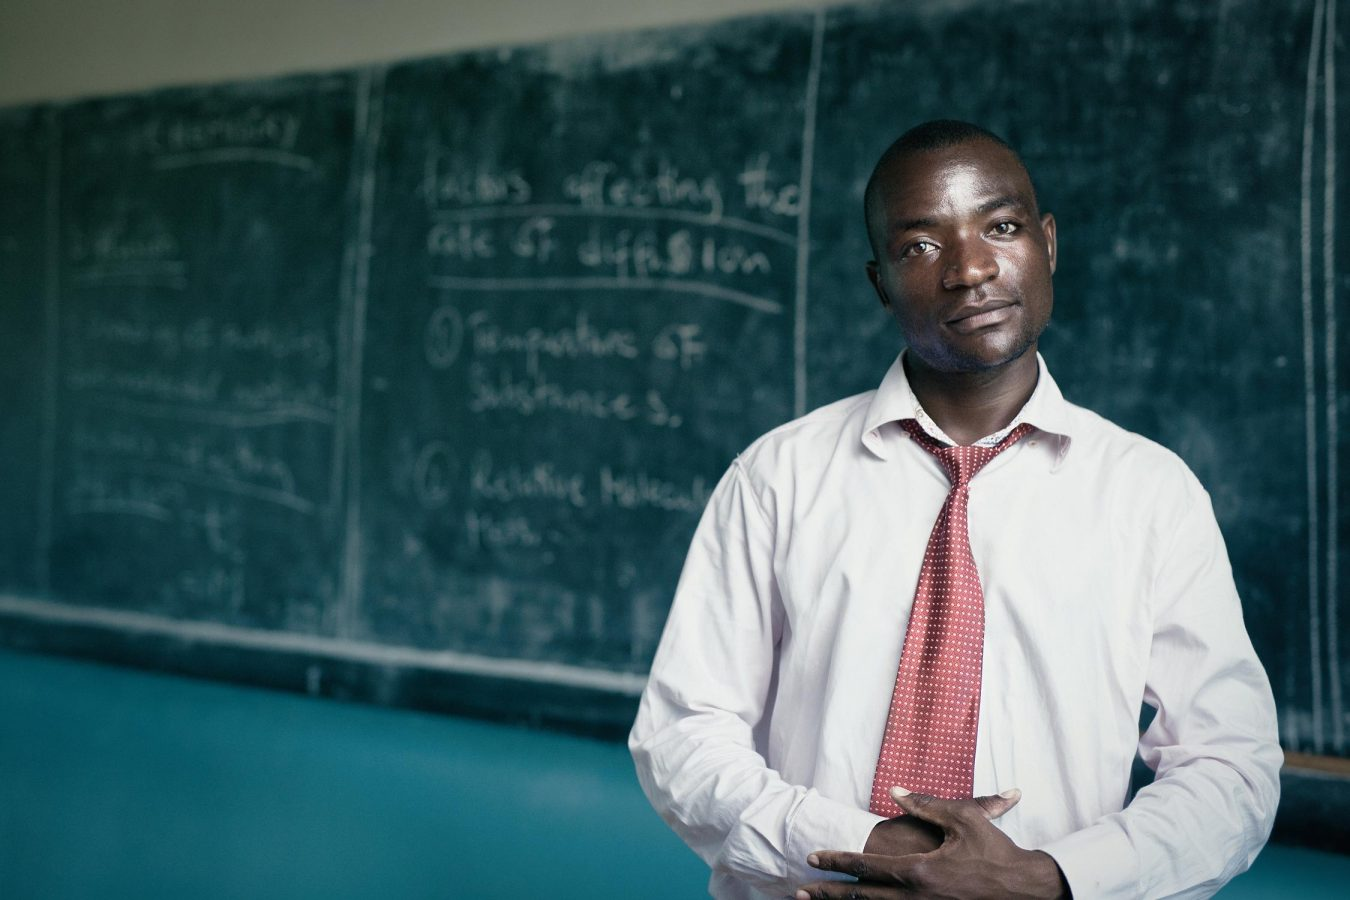 editorial-photography-portrait-malawi-science-teacher-namisu